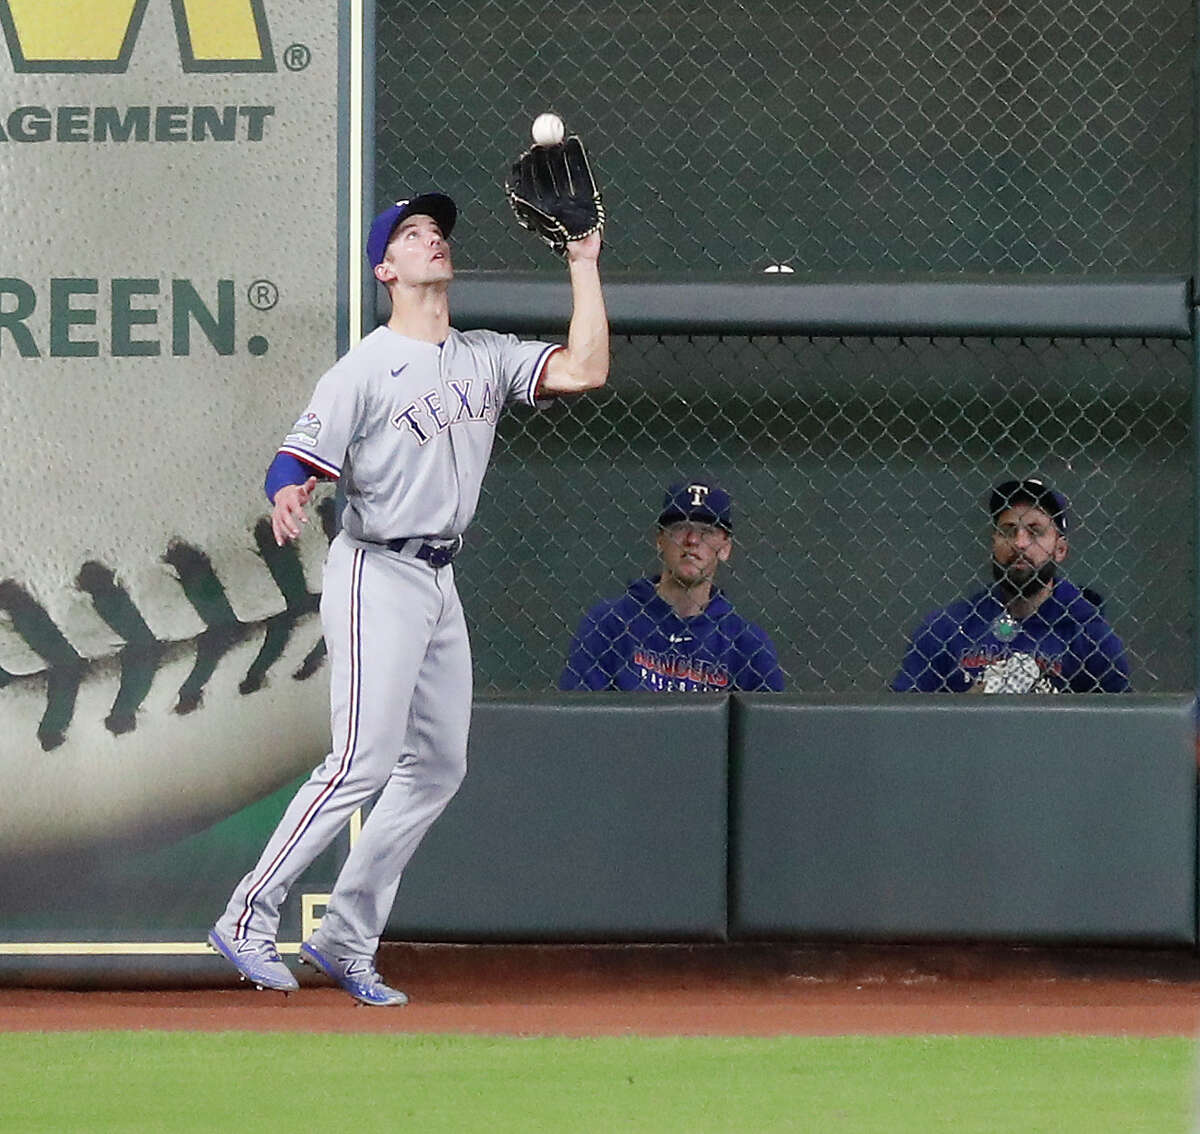 Texas Rangers left fielder Eli White catches Houston Astros Yuli Gurriel's fly out during the seventh inning of an MLB baseball game at Minute Maid Park, Thursday, September 17, 2020, in Houston.